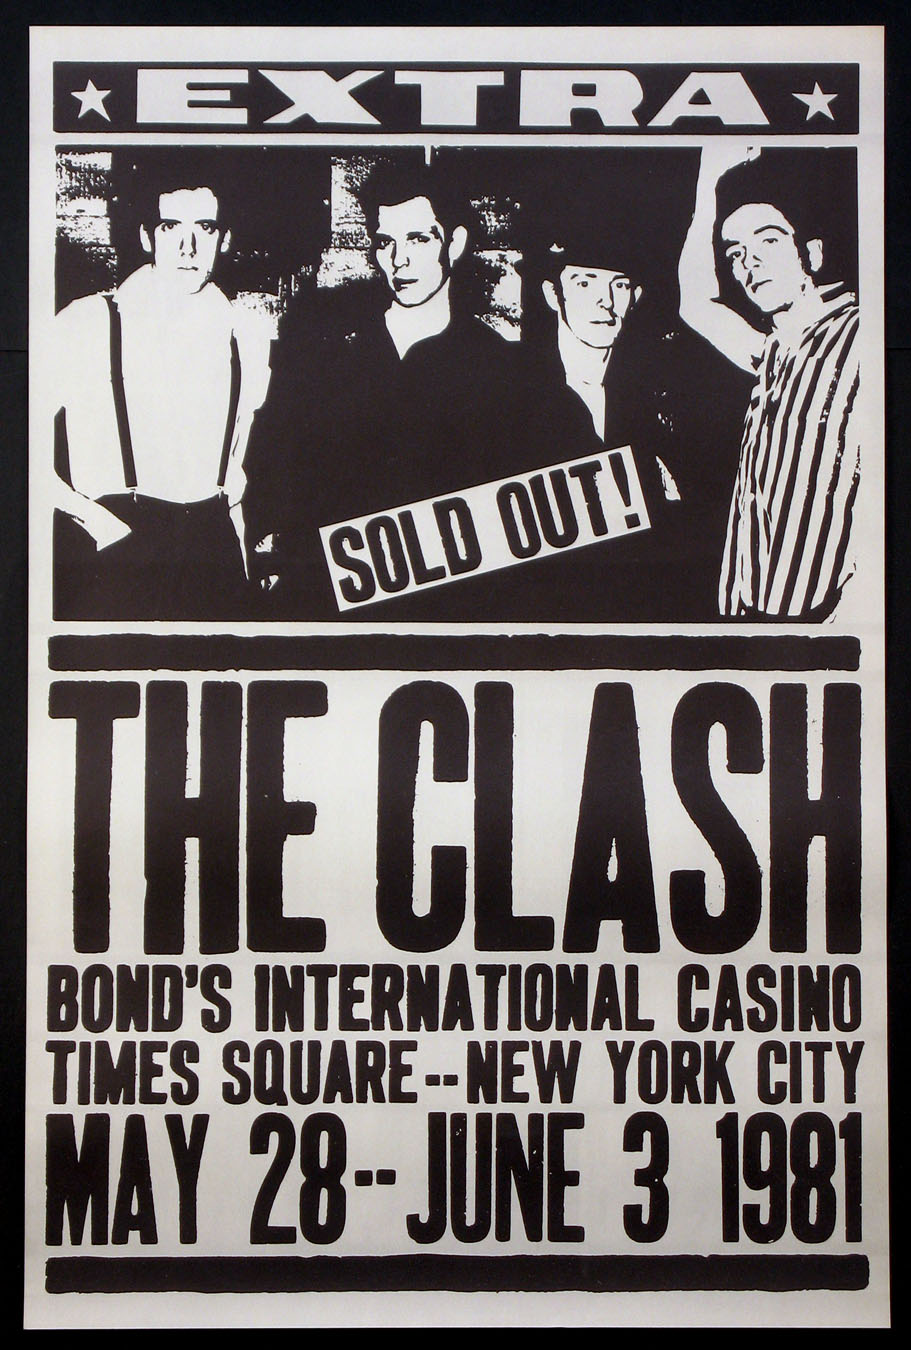 A poster for The Clash at Bond's International Casino at Times Square in 1981.